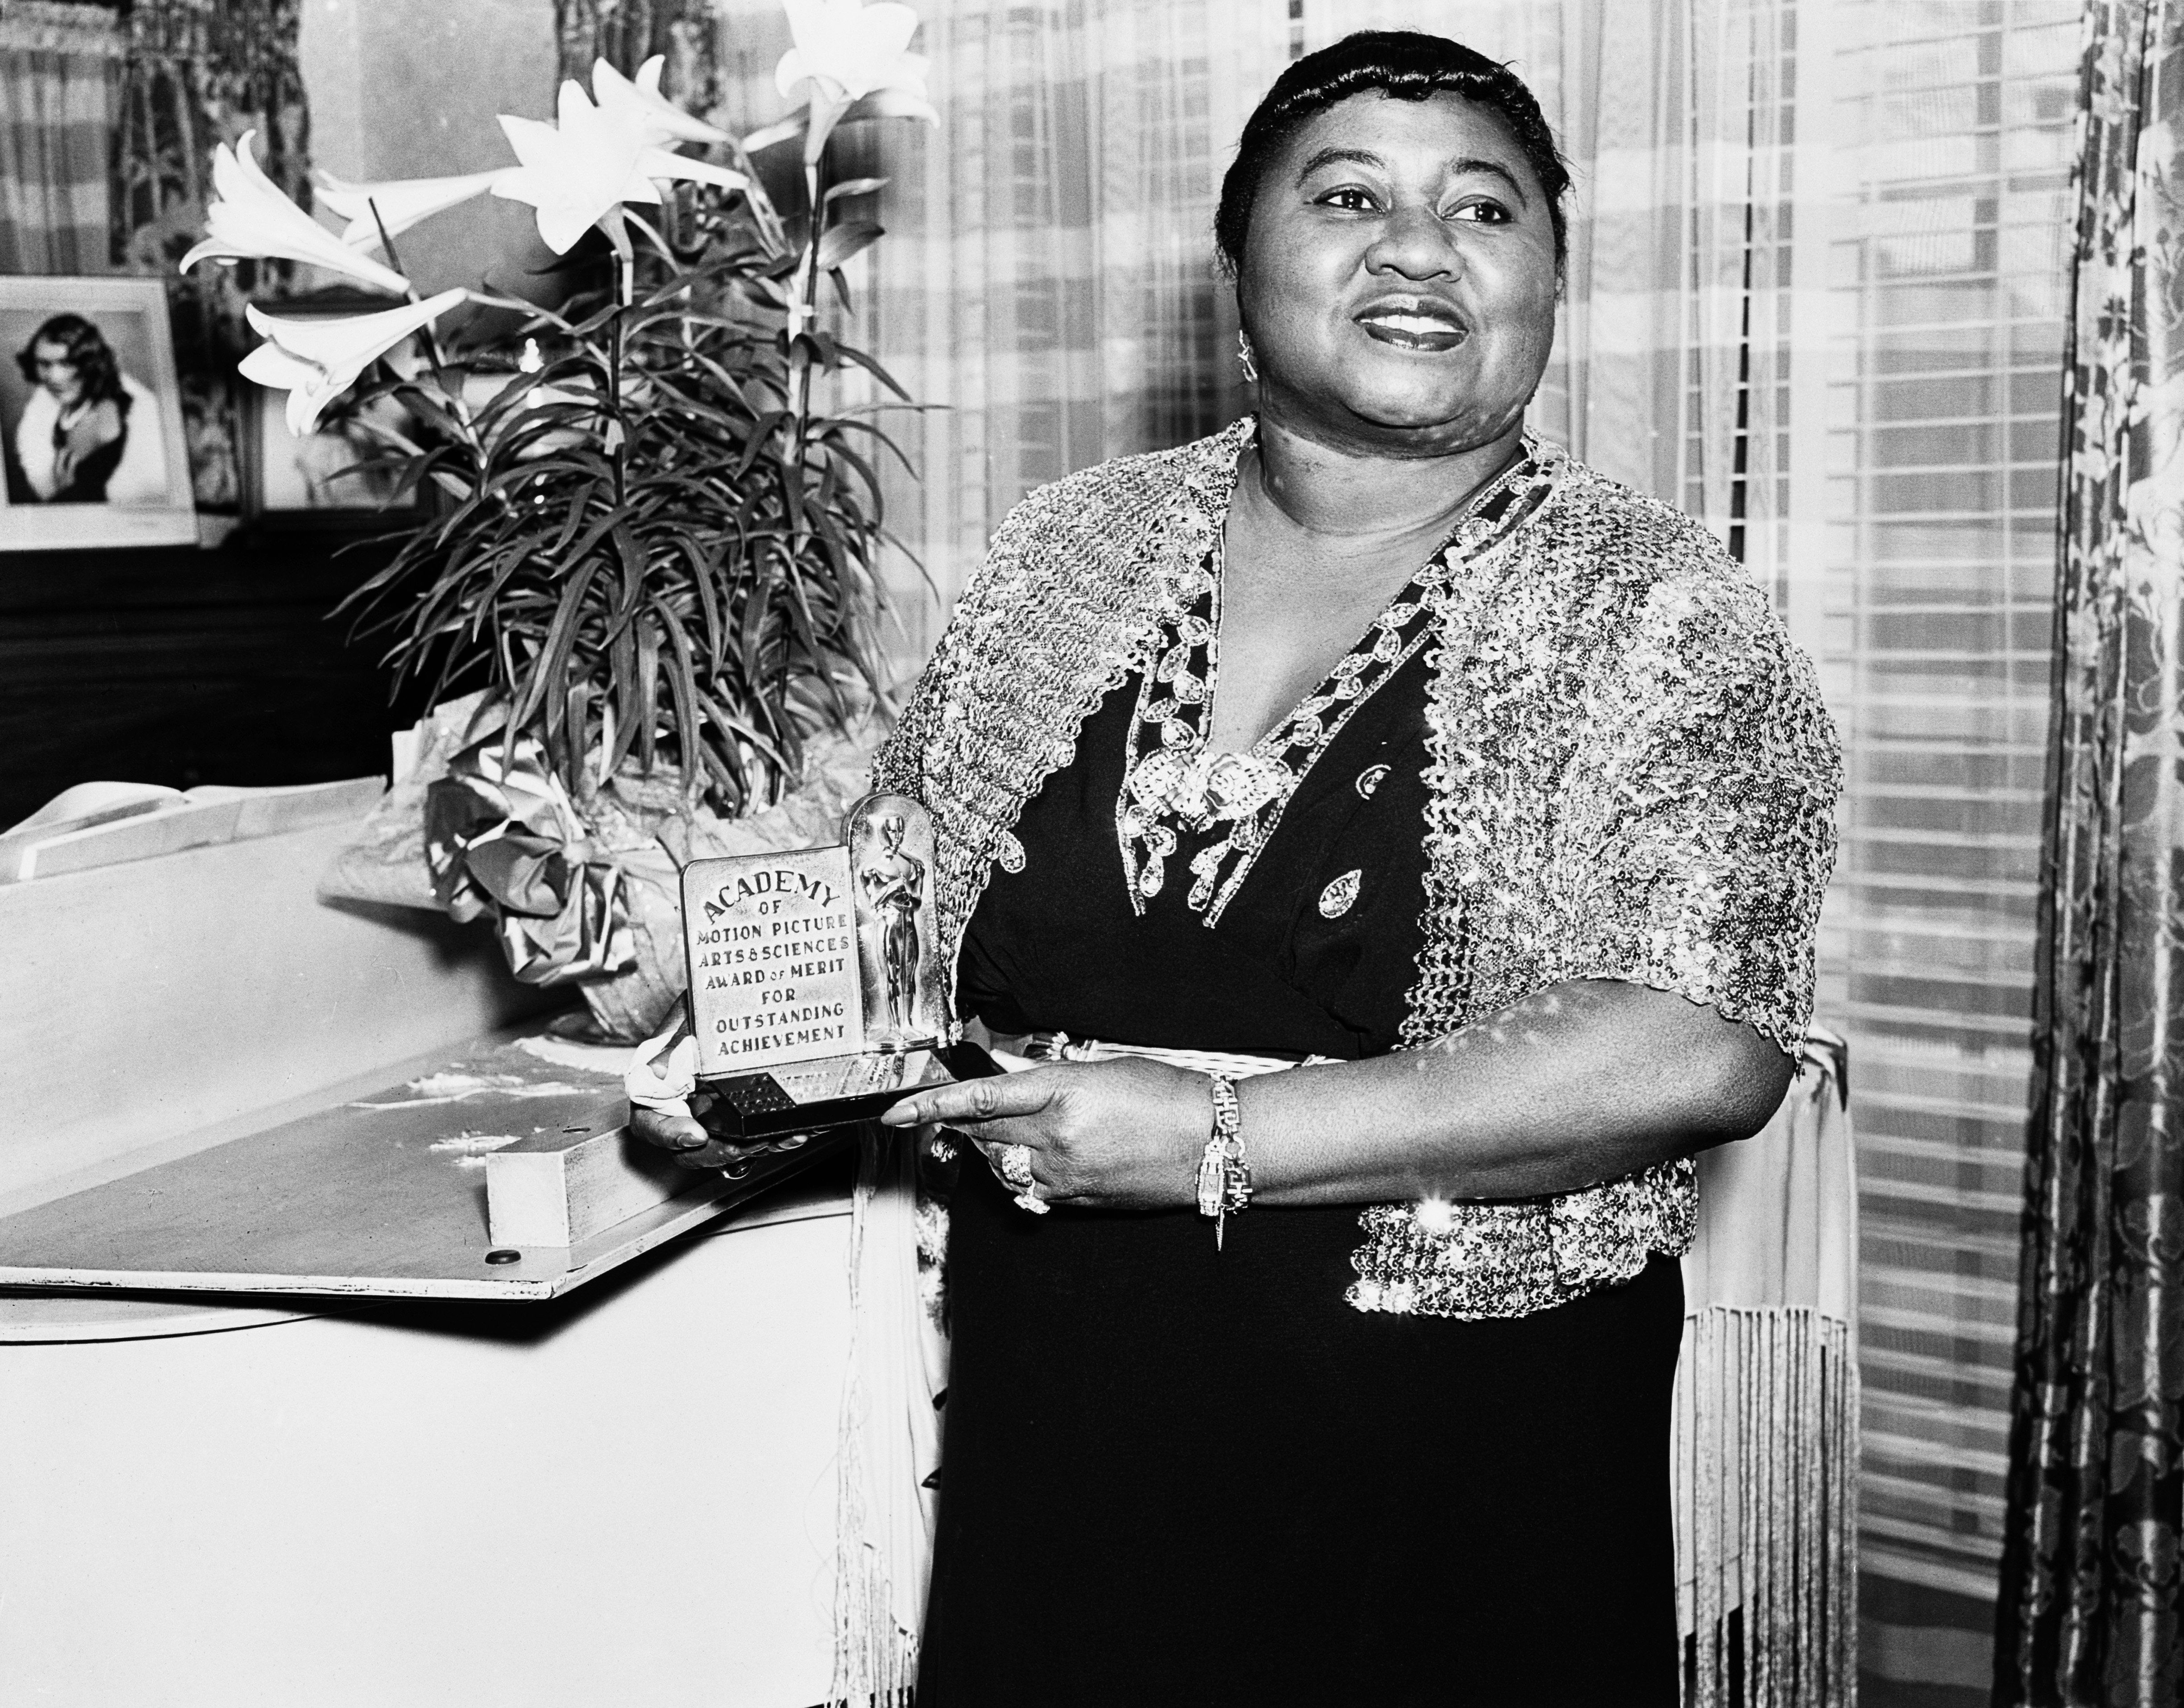 Get Ready For A Biopic About Hattie McDaniel, The First Black Oscar Winner